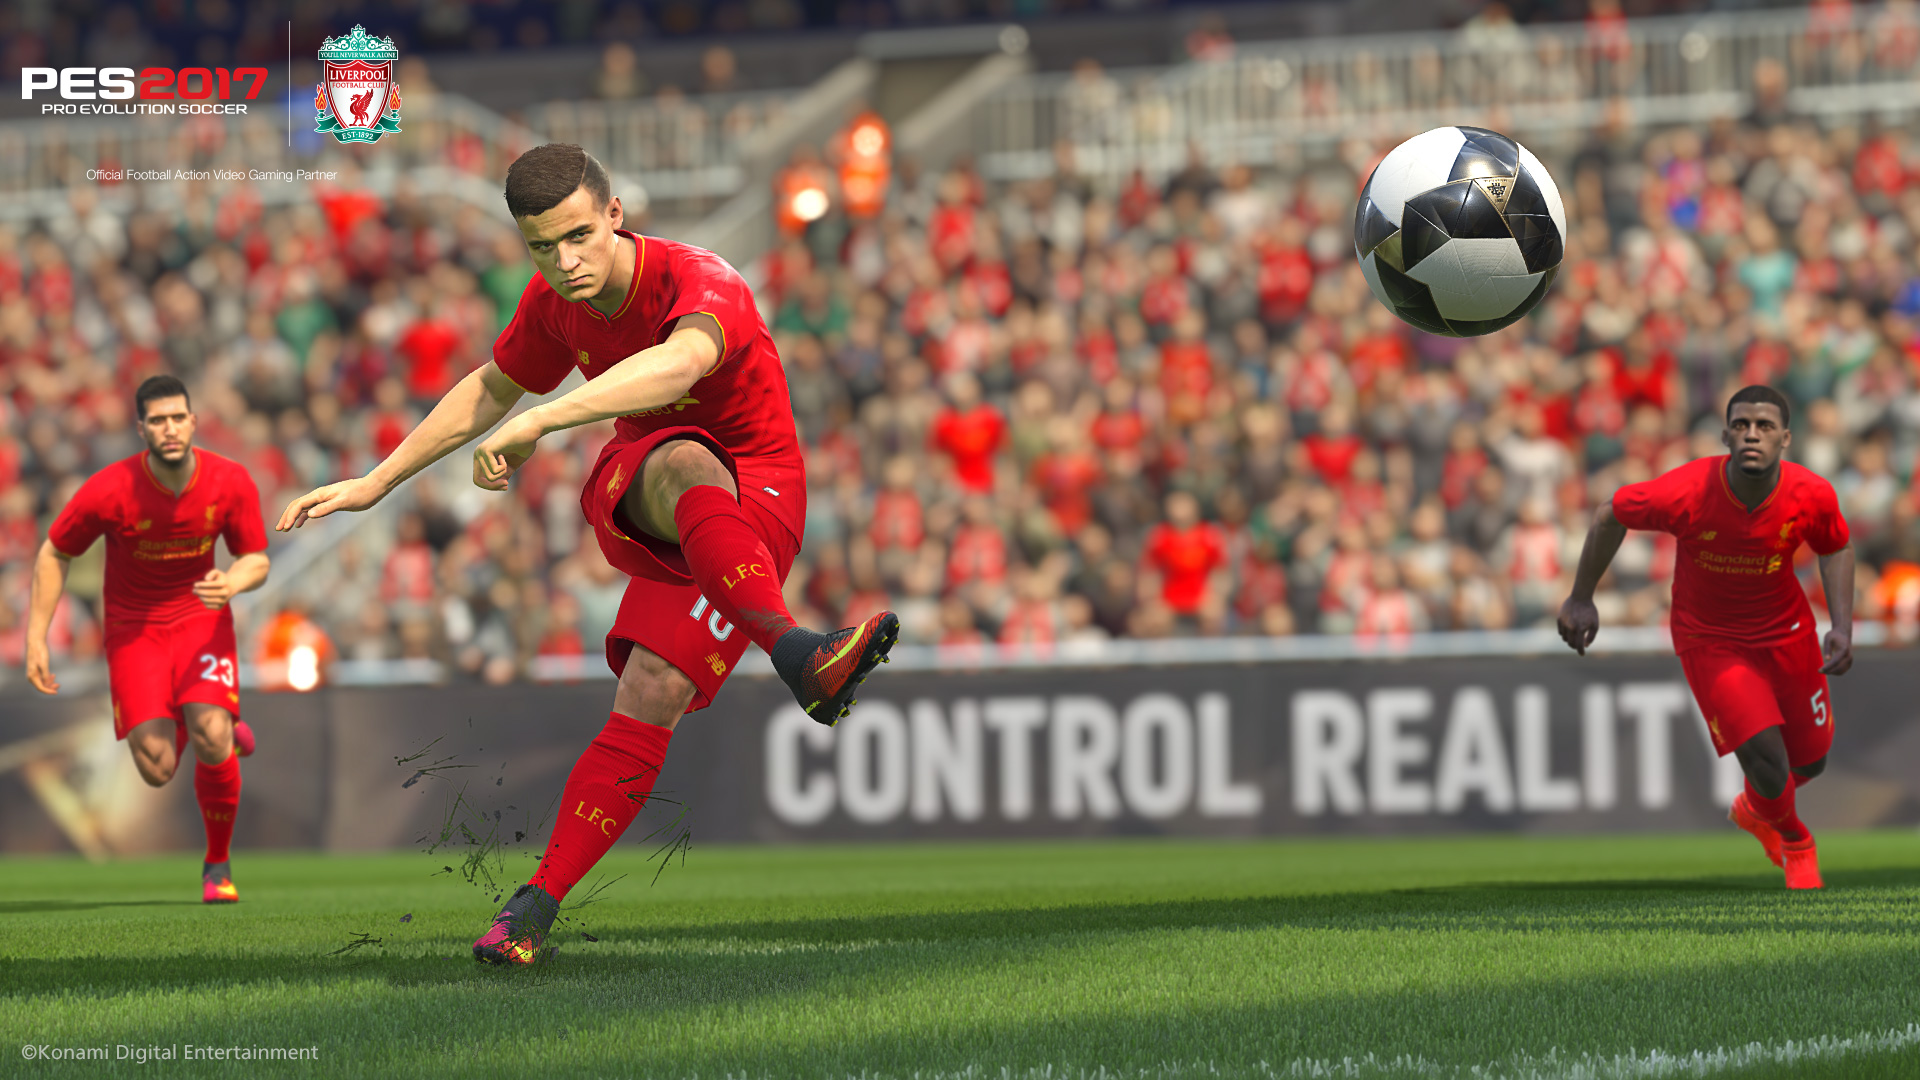 PES2017-LFC-Jointlogo-Announcement-Action-01